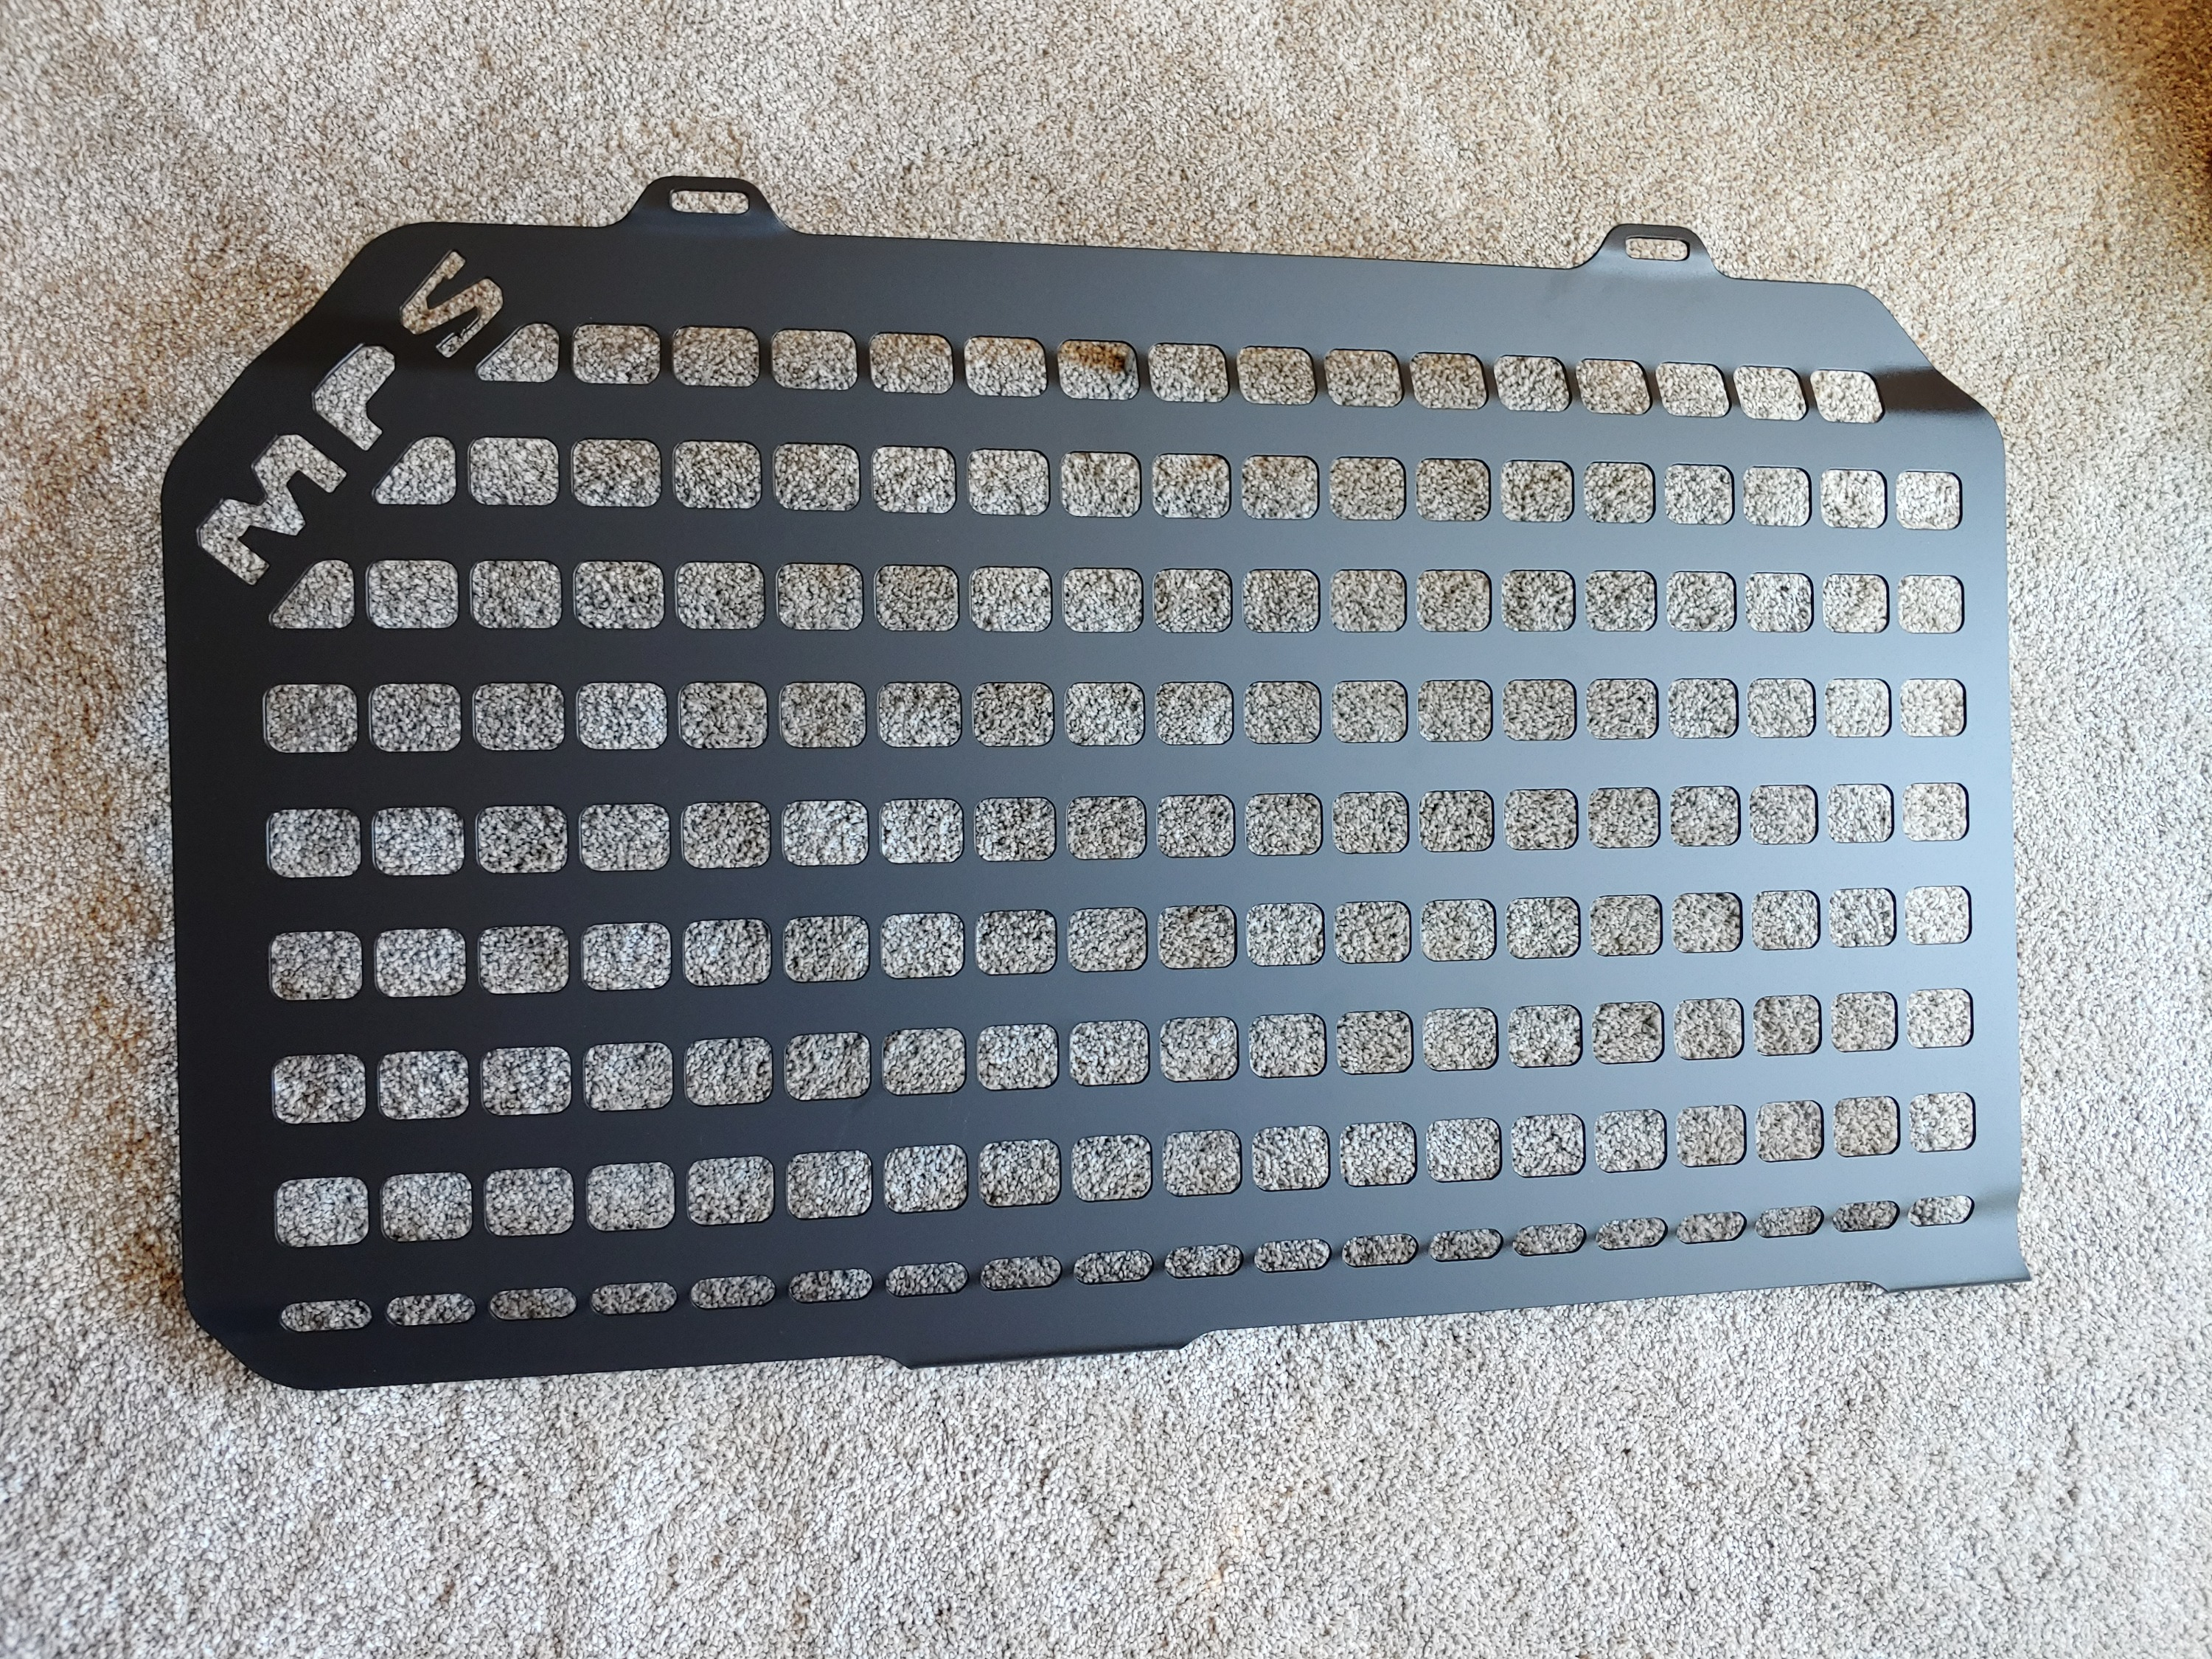 JK JEEP 2 dr. REAR CAGE MOLLE PANELS